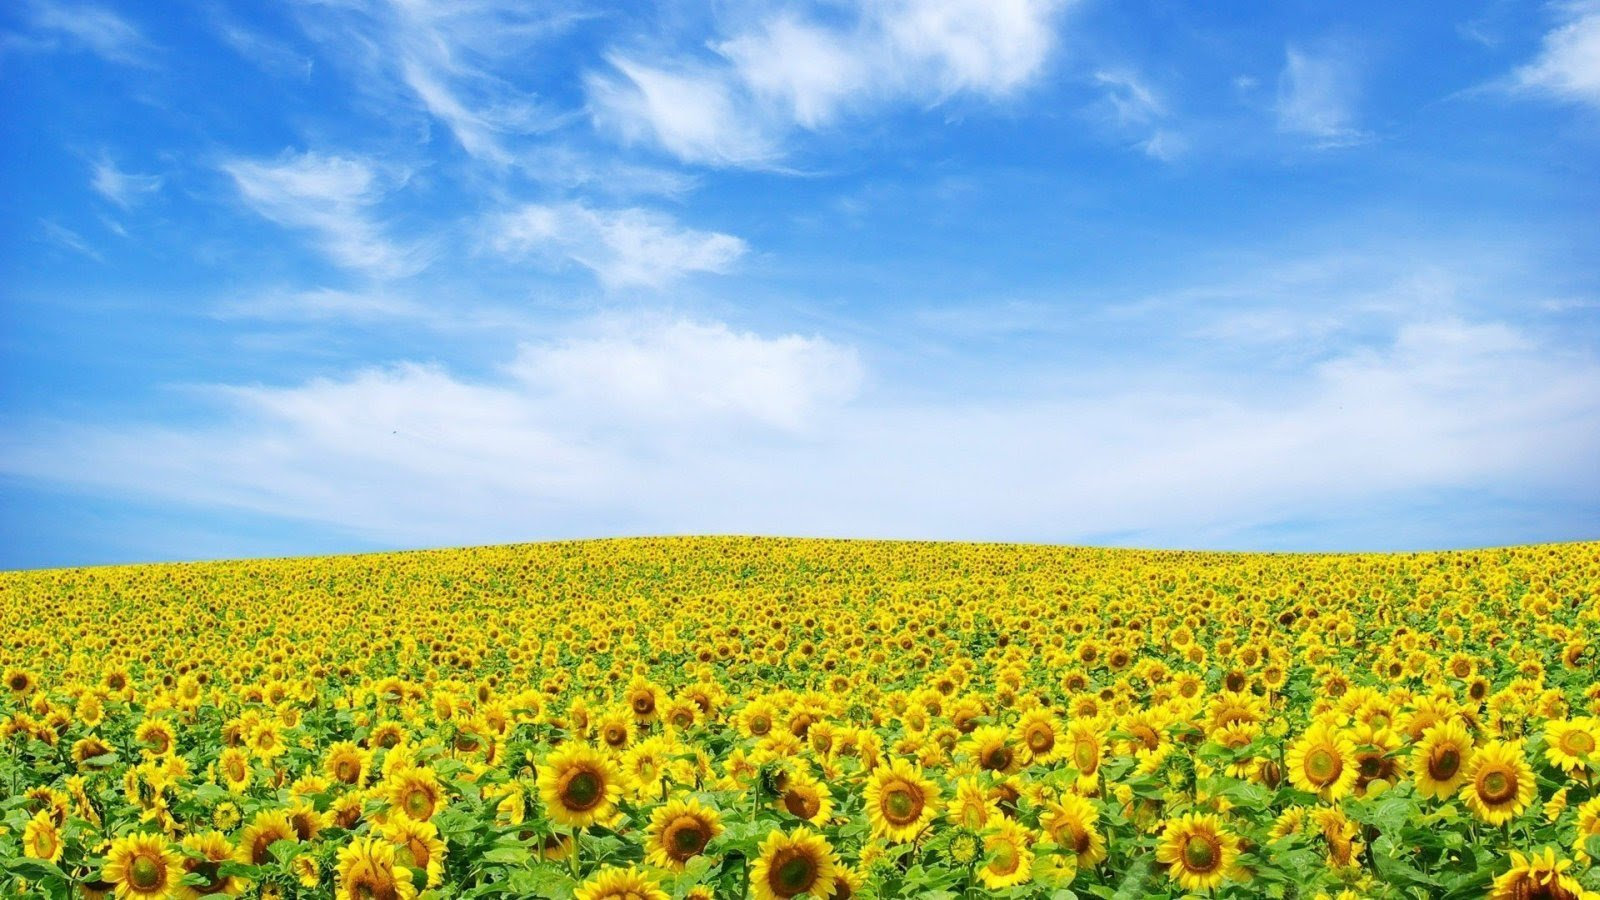 yellow-flower-wallpaper-13